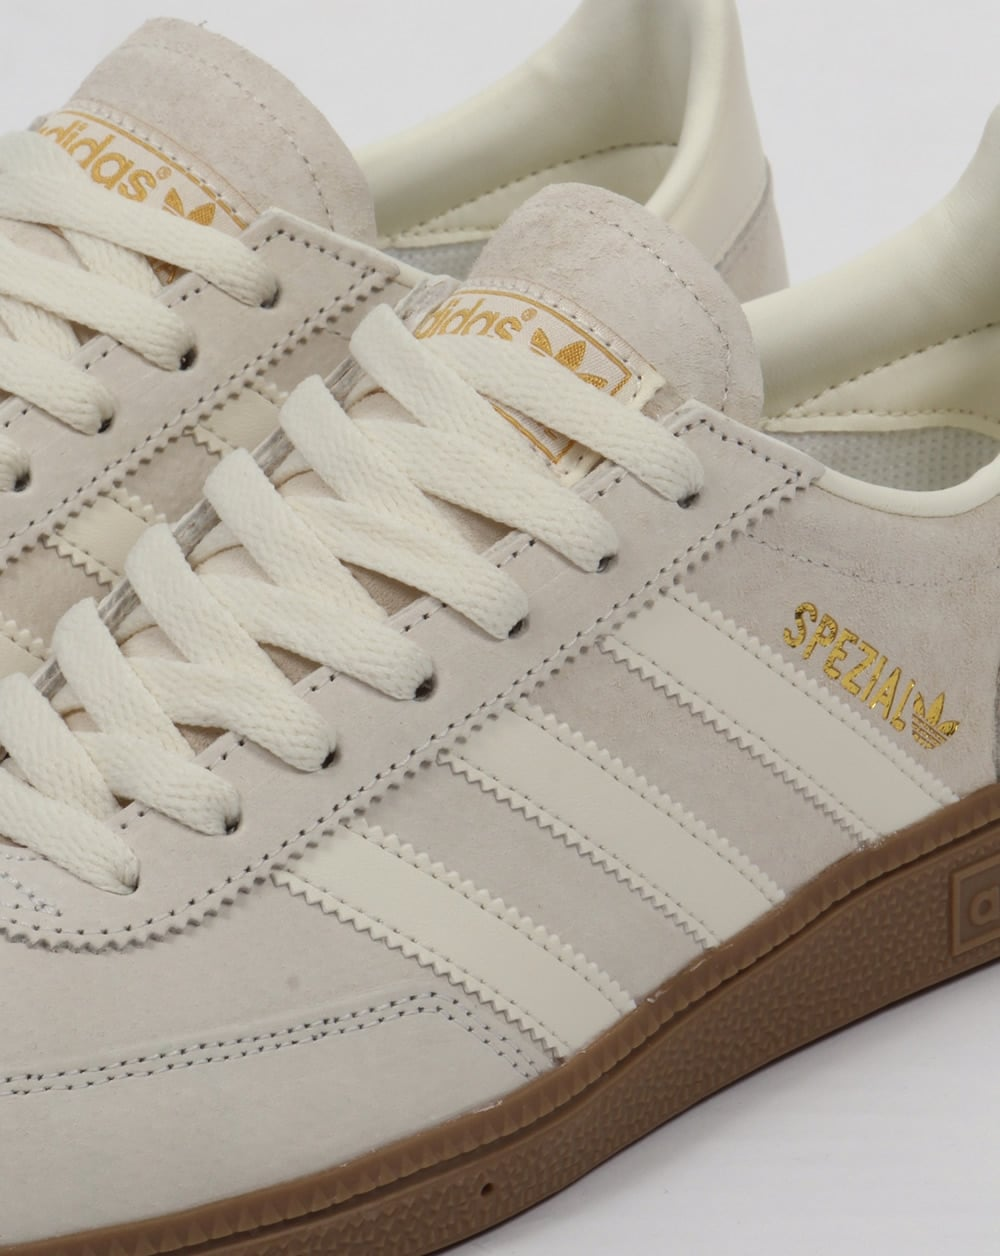 Adidas Gazelle Cream White